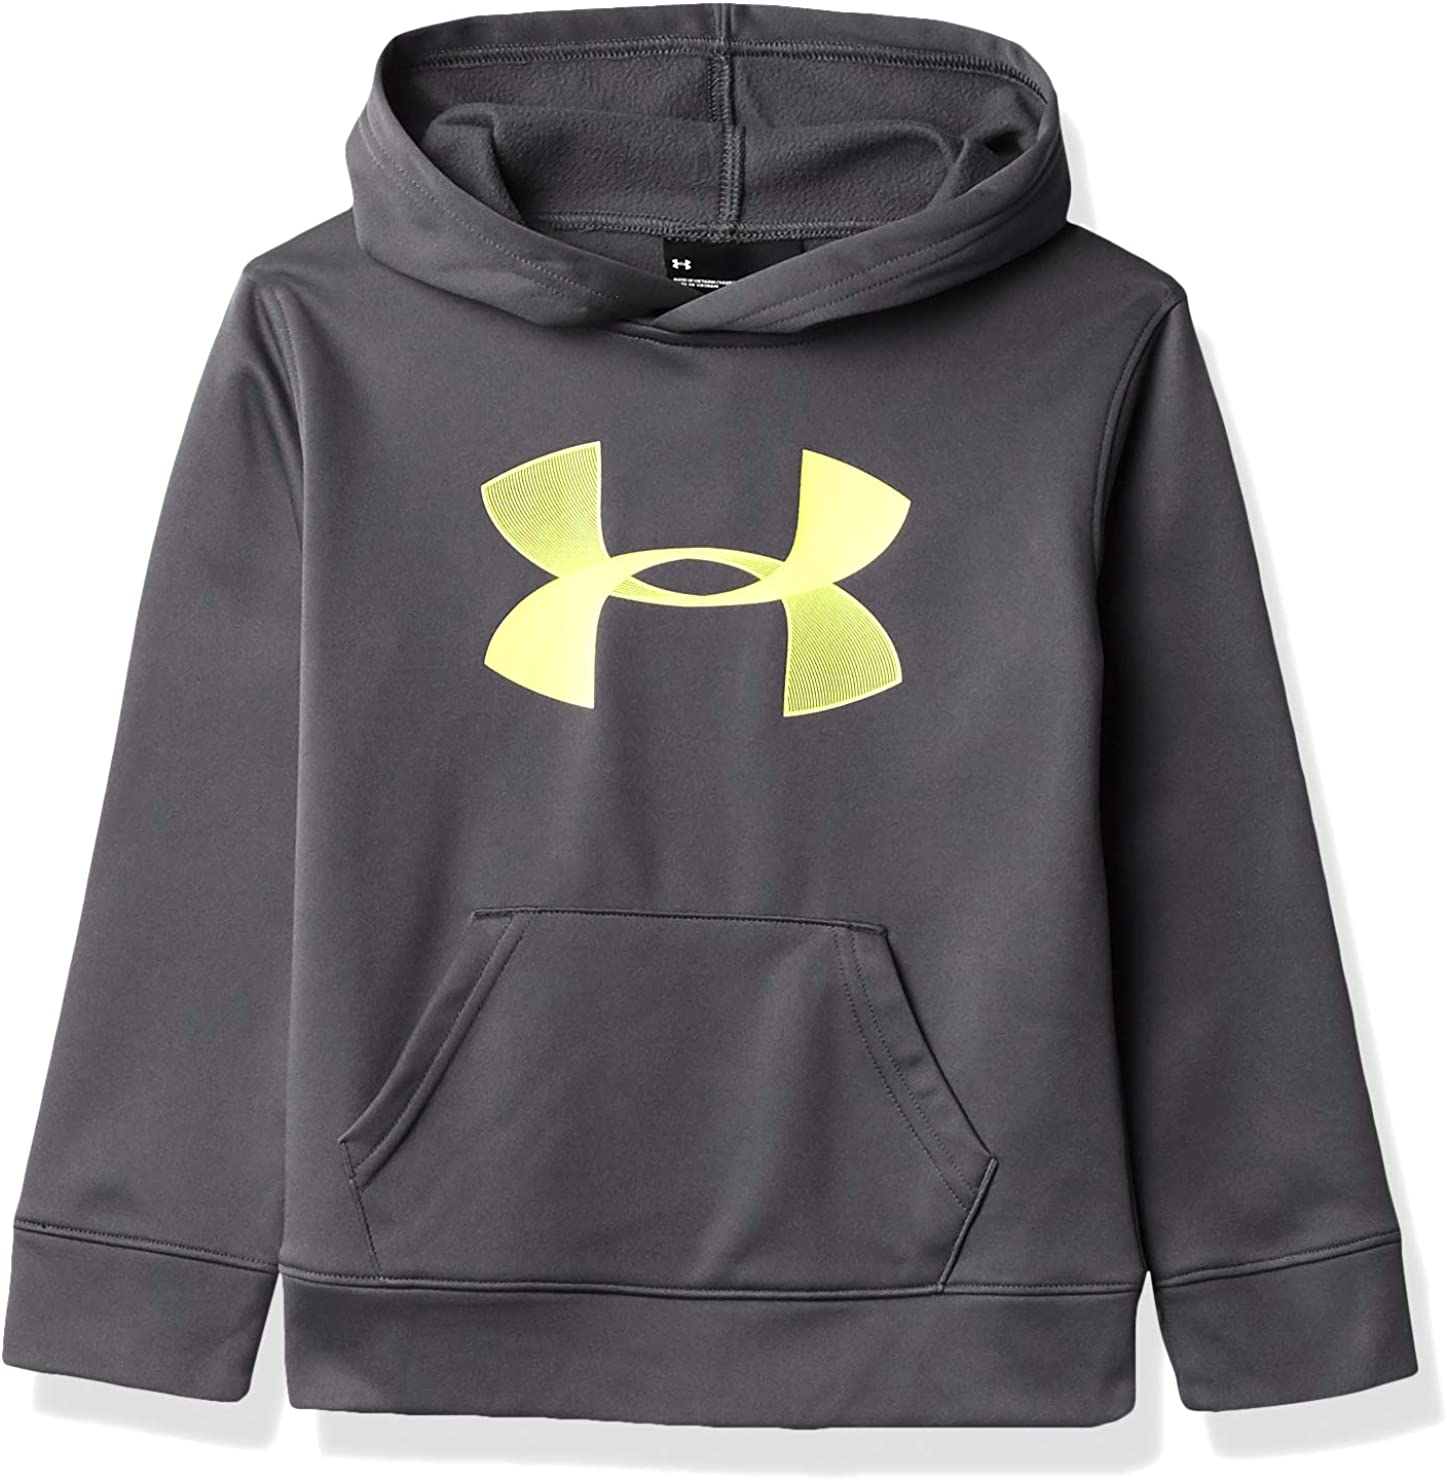 Max 65% OFF Under Dealing full price reduction Armour Boys' Ua Hoodie